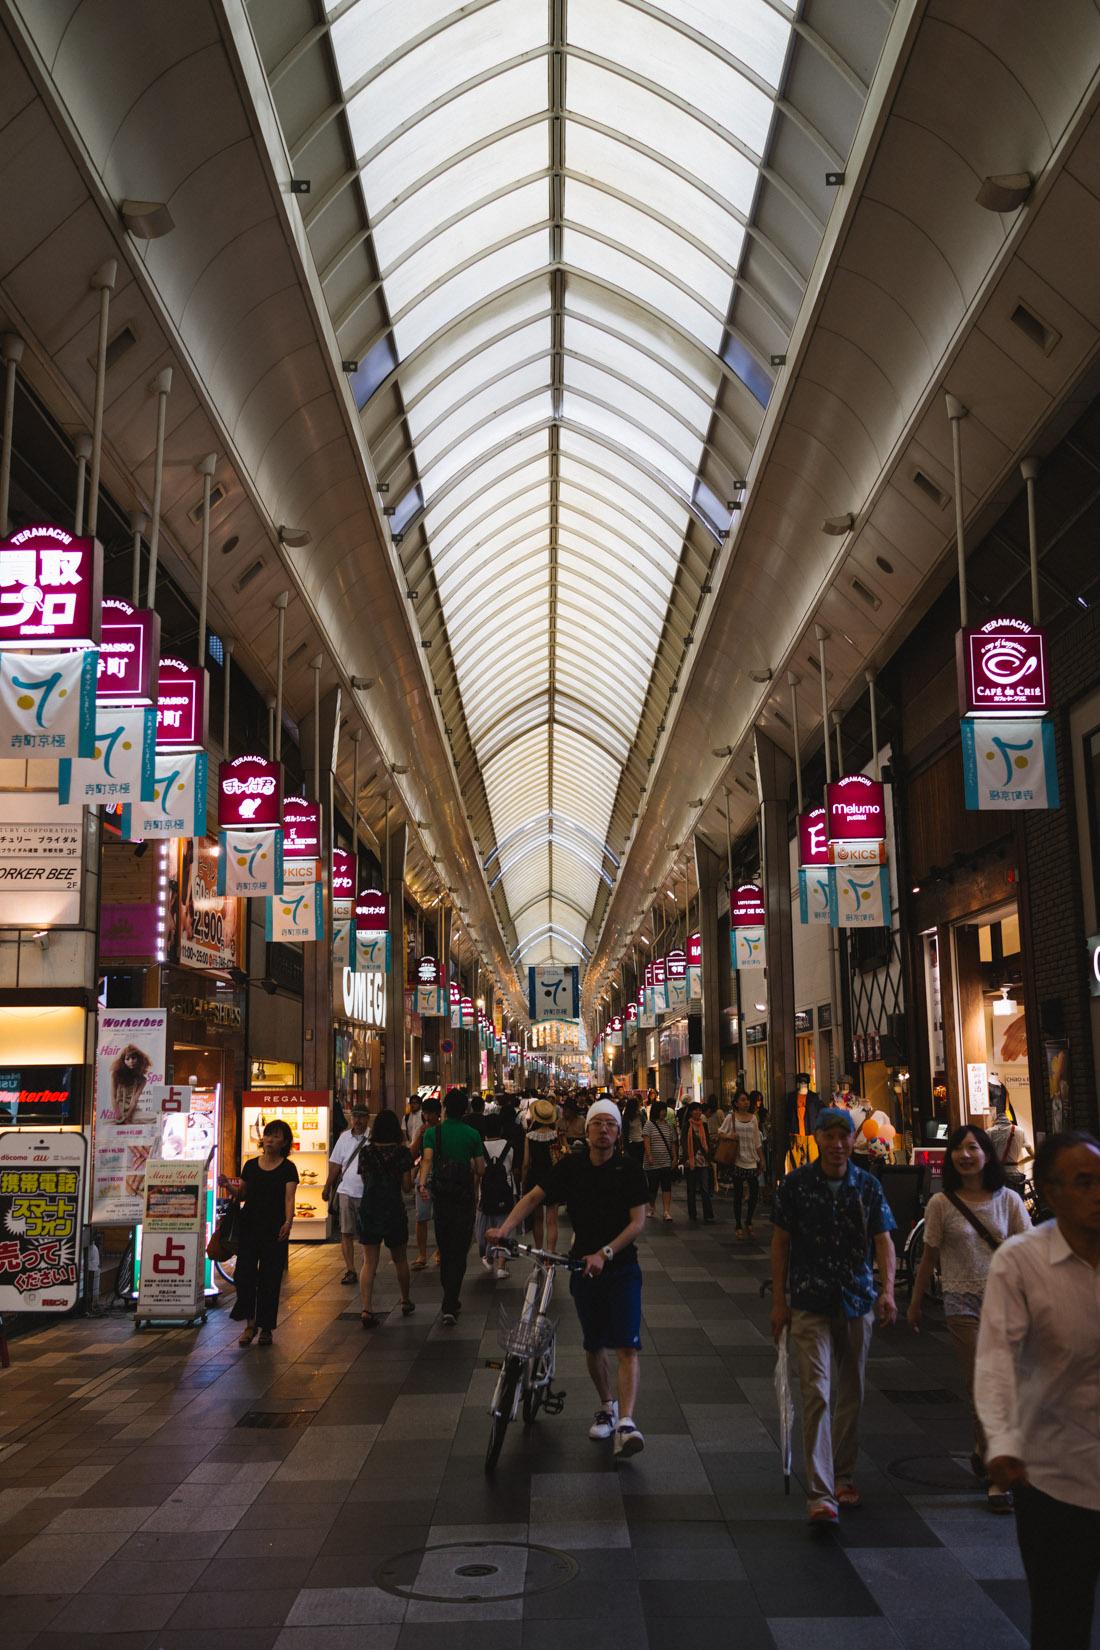 Kyoto's covered market and shops area.